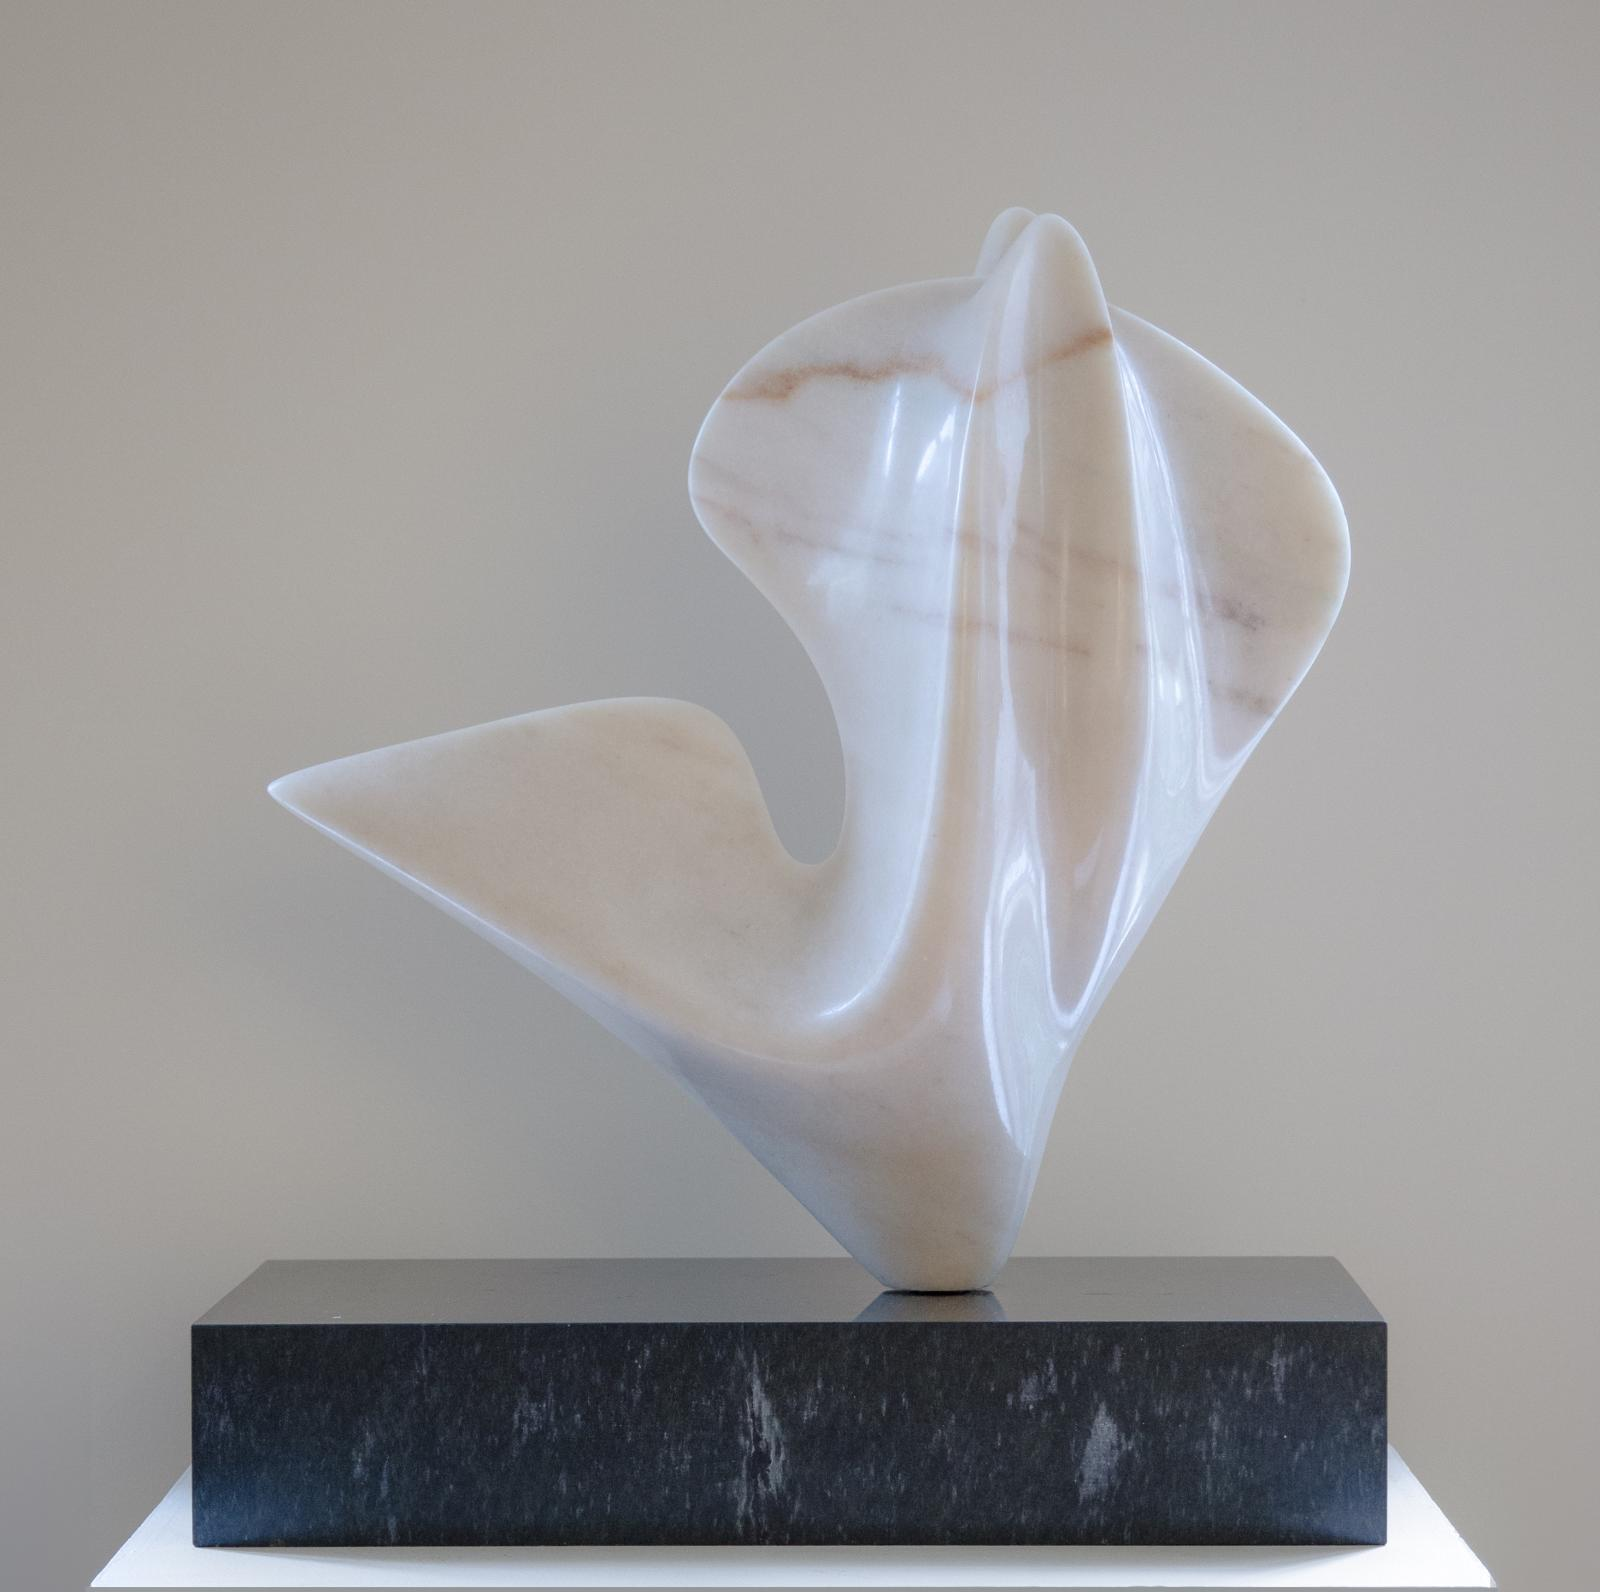 Antoine Poncet, Abstract Form, 1973